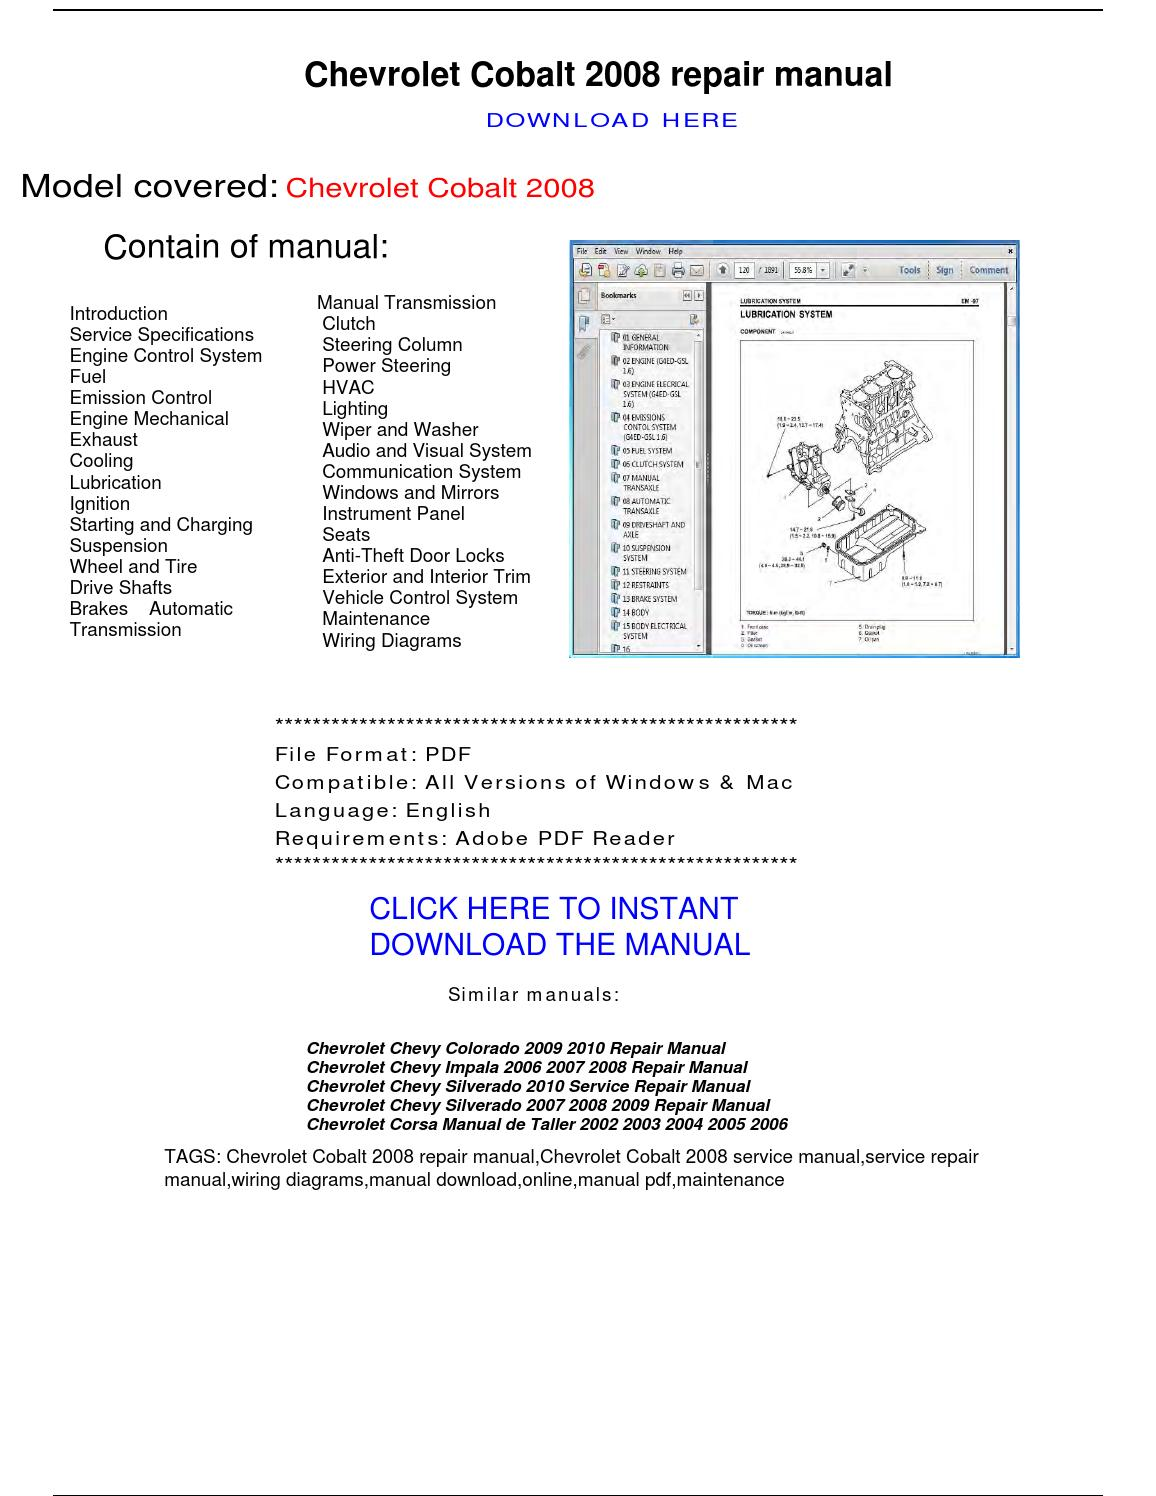 Chevrolet Cobalt 2008 Repair Manual By Repairmanualpdf